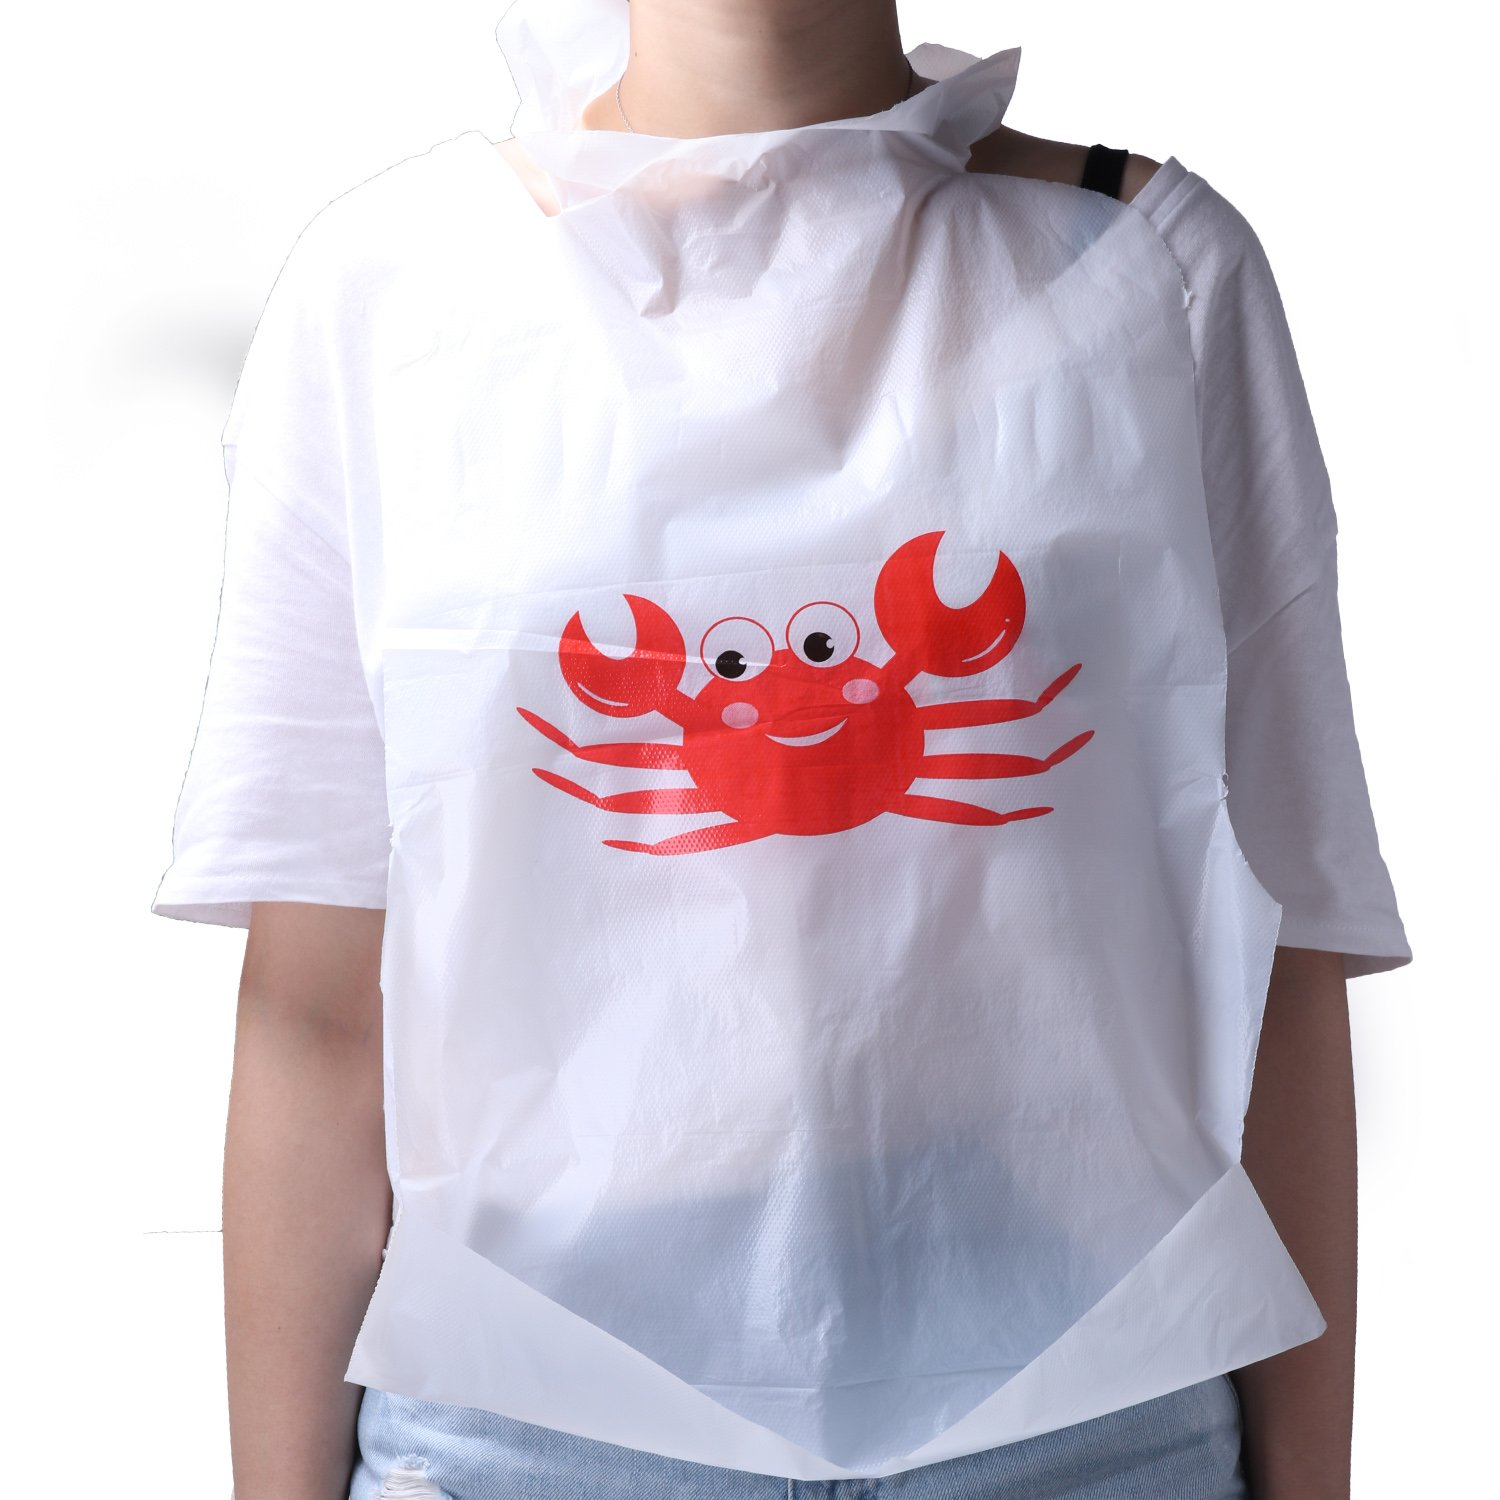 90-Piece Party Supply Crab Bibs Seafood Feast Adult Disposable Bibs Protect Clothes from Spills